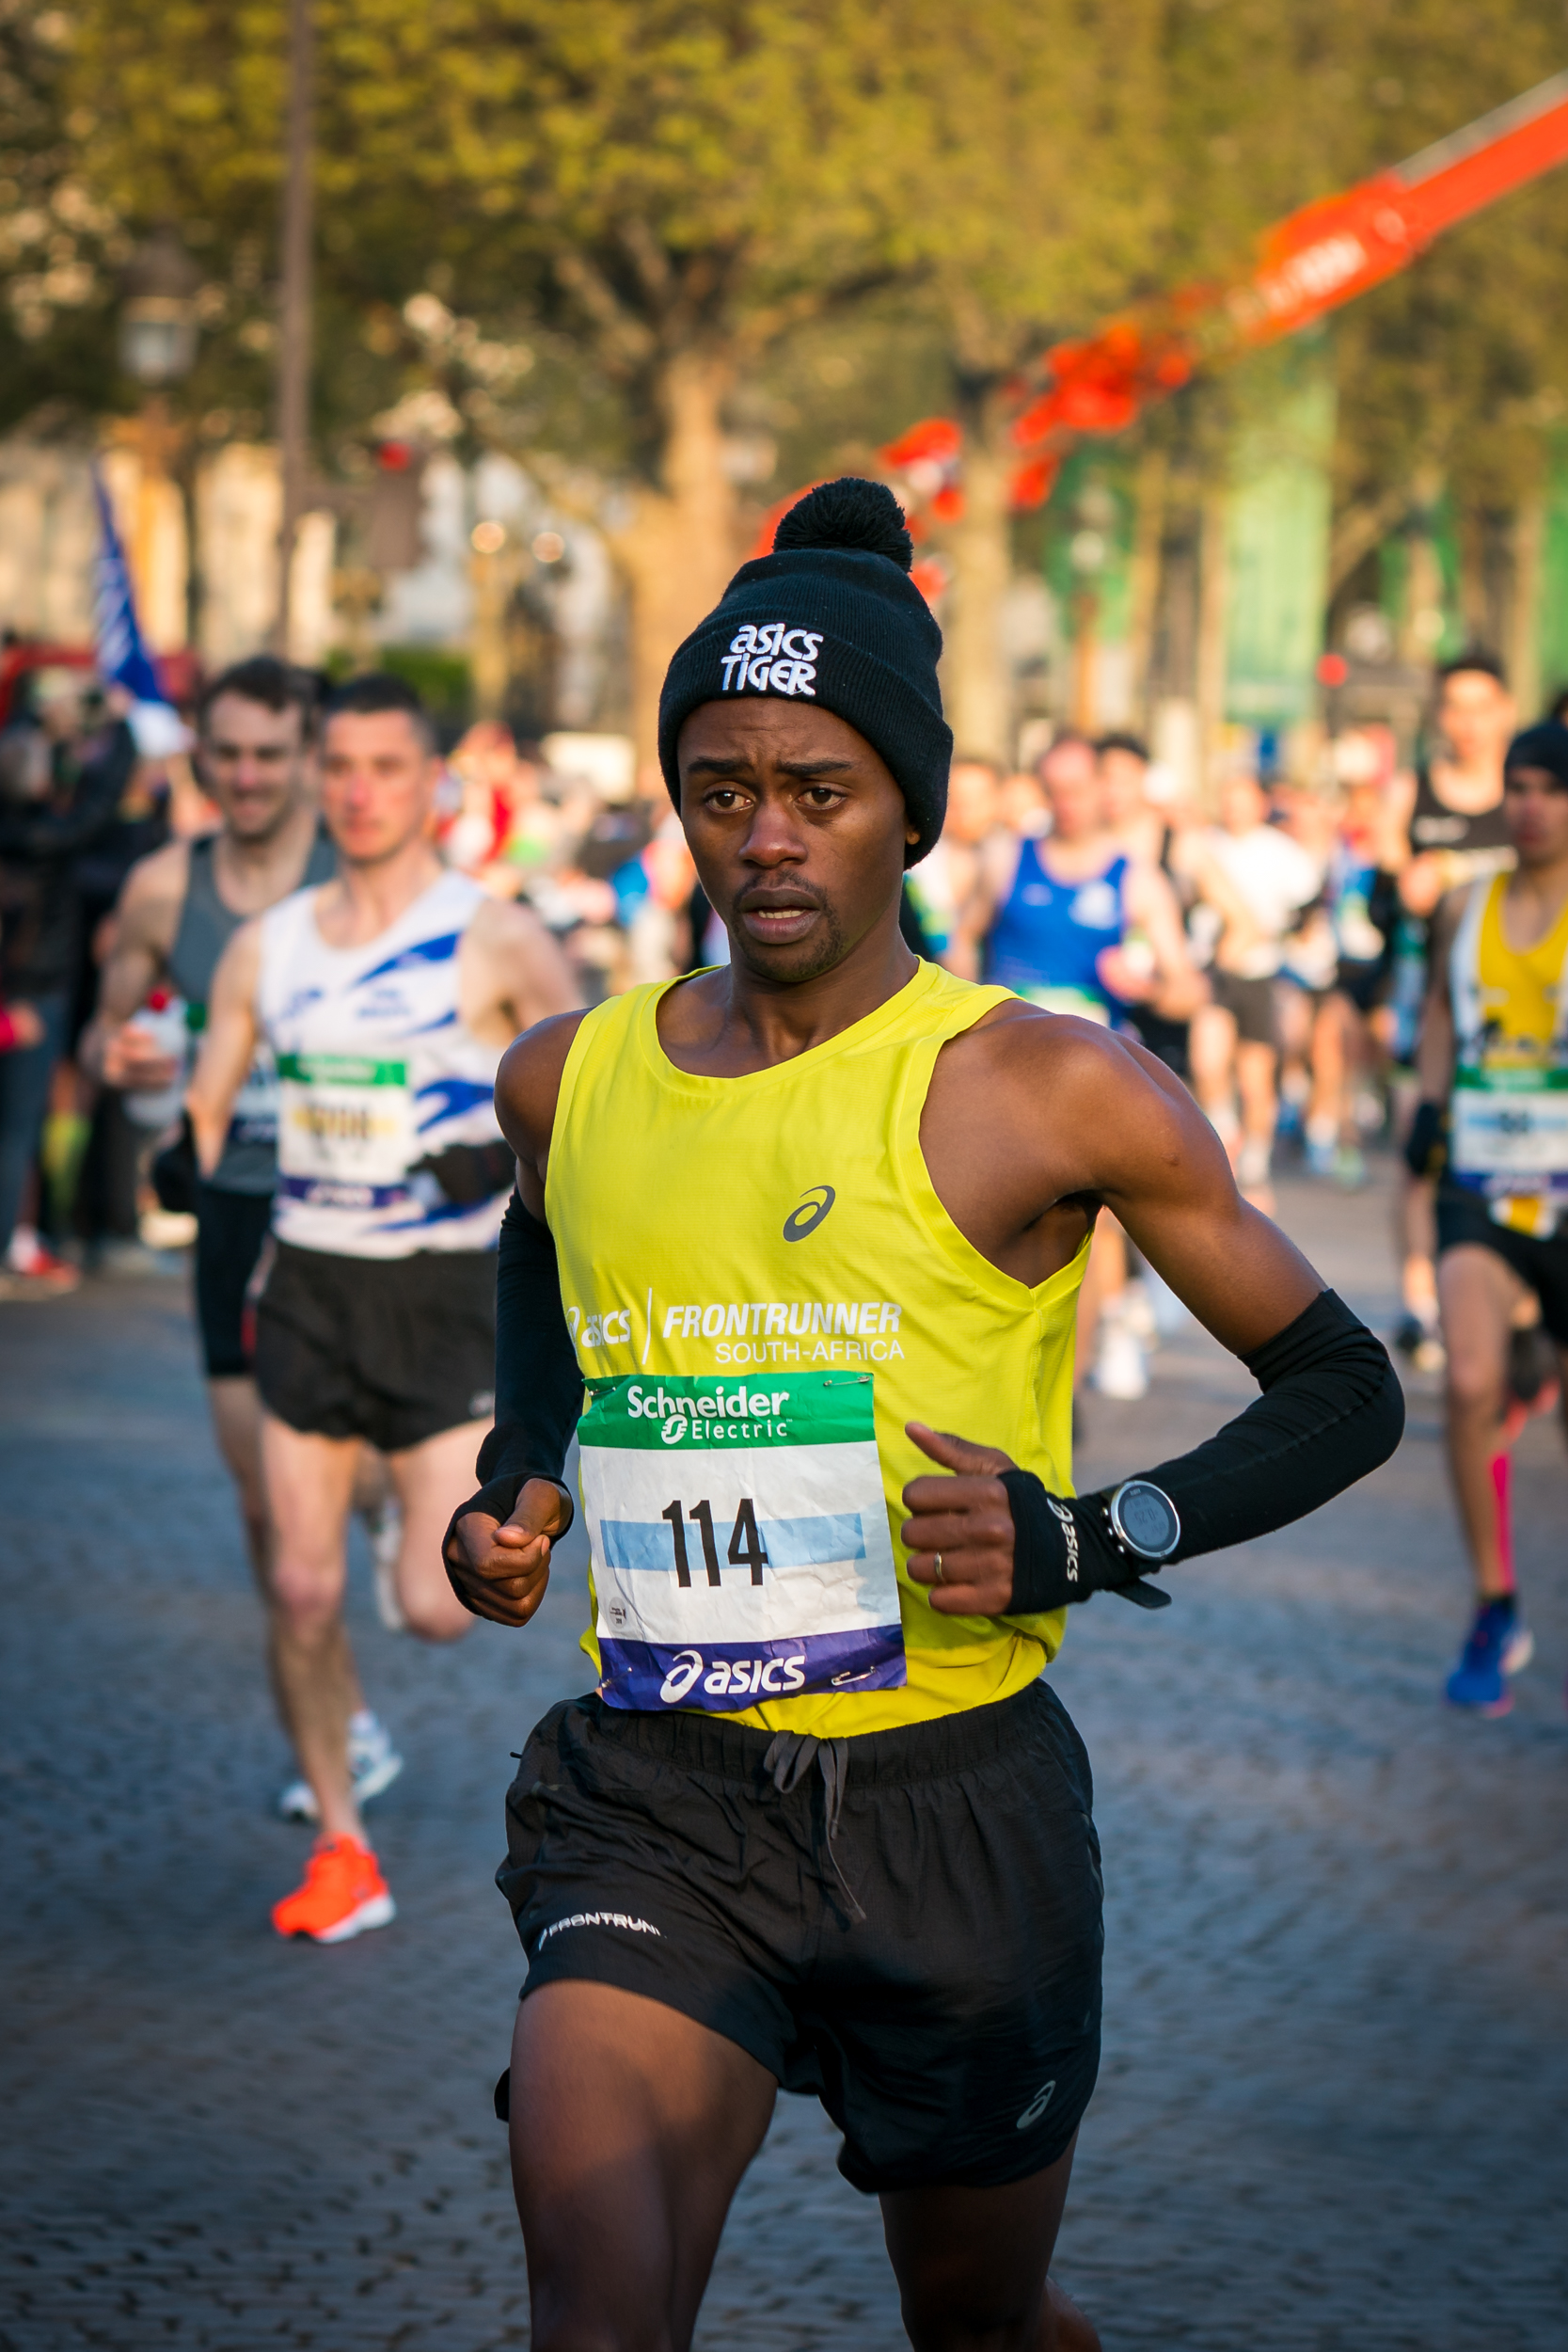 BMW_Marathon Paris 2019_Florian Leger_SHARE & DARE_HD_ N°-47.jpg